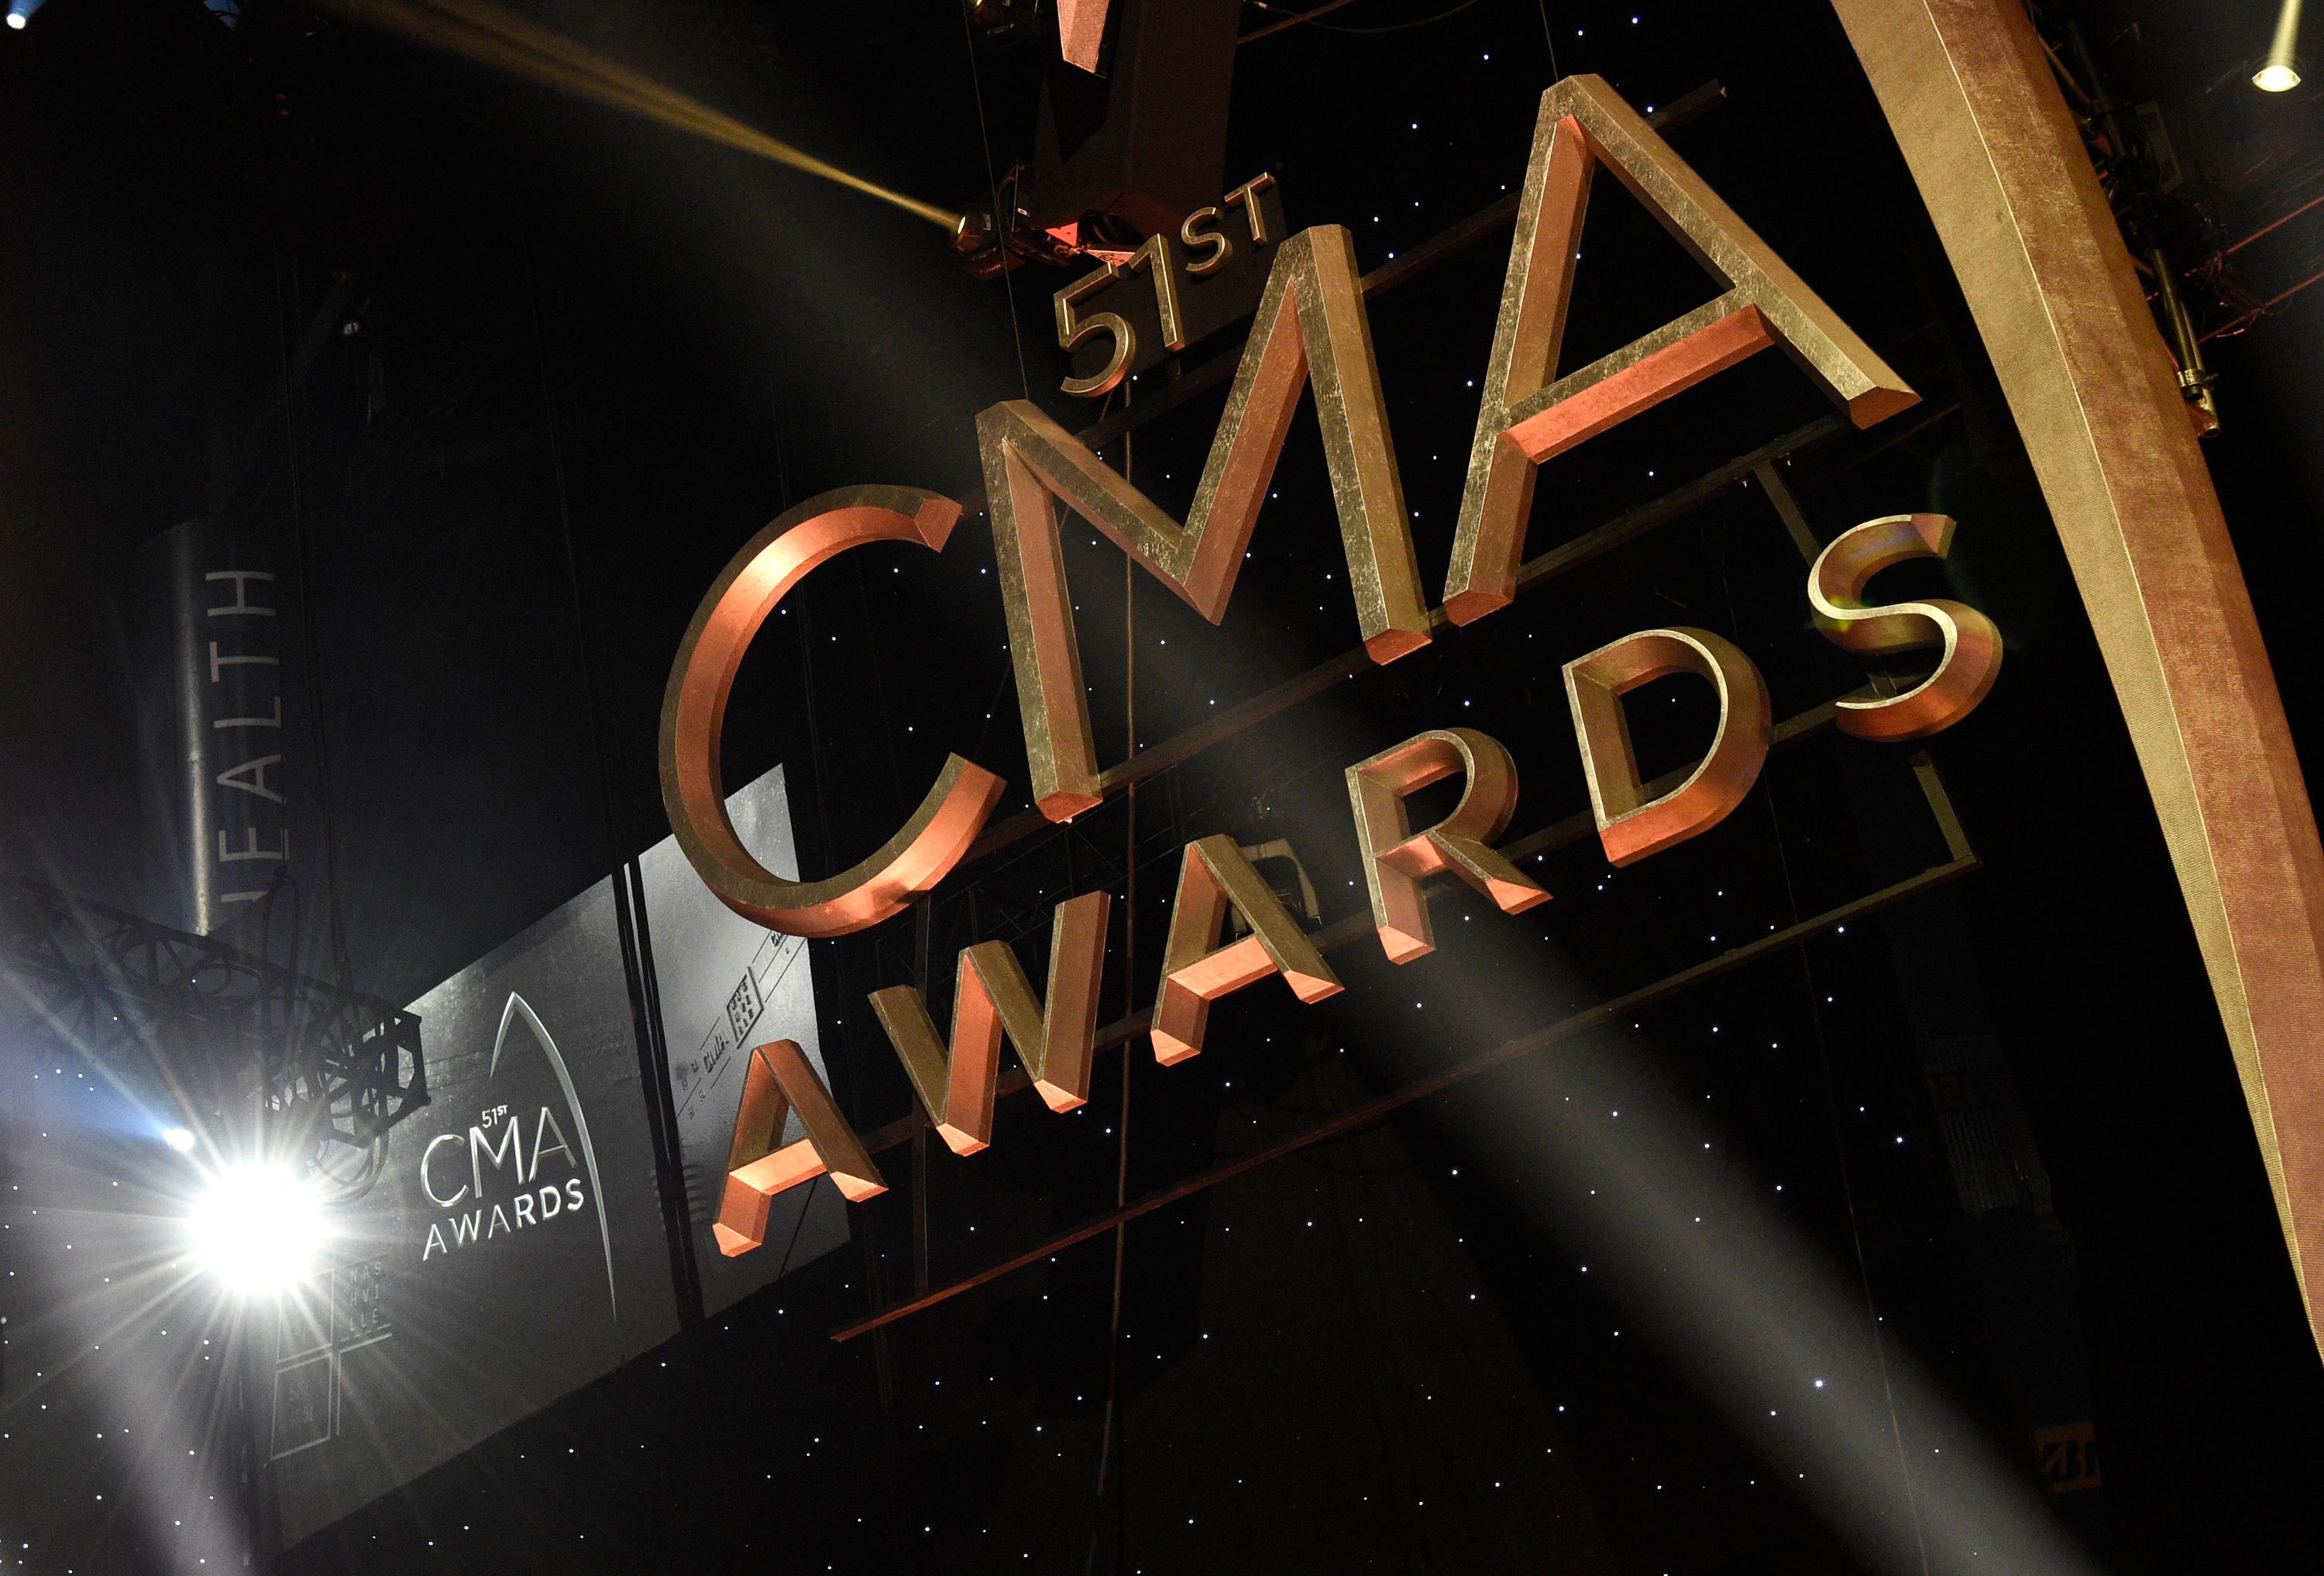 Signage for the 51st annual CMA Awards appears in lights at the Bridgestone Arena on Wednesday, Nov. 8, 2017, in Nashville, Tenn. (Photo by Chris Pizzello/Invision/AP)